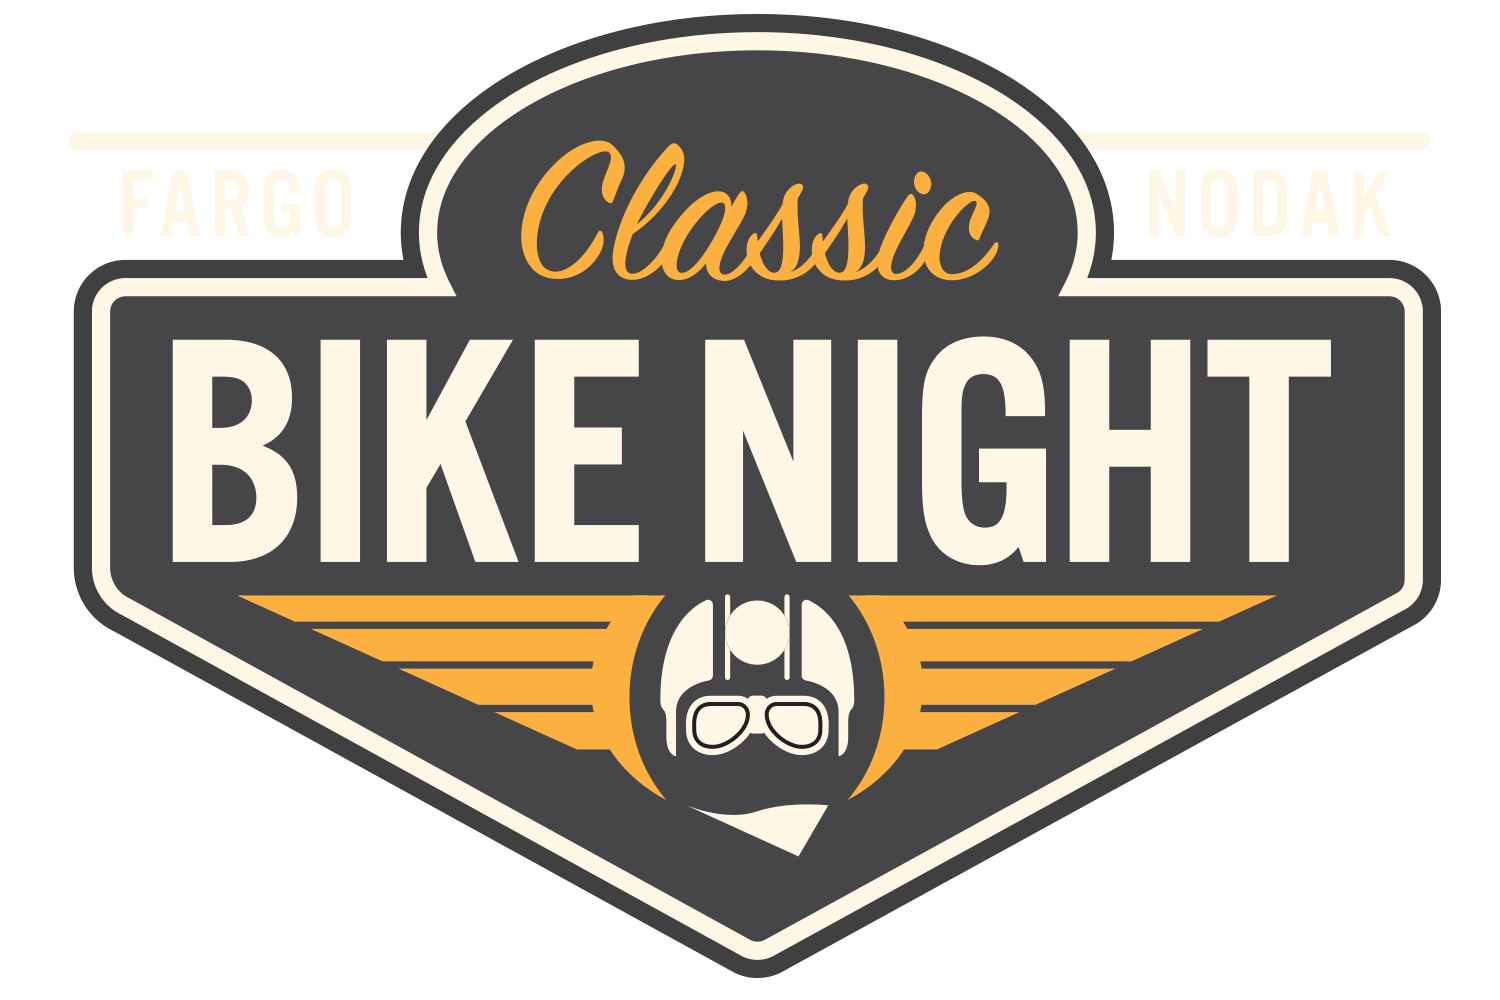 FM Classic Bike Night